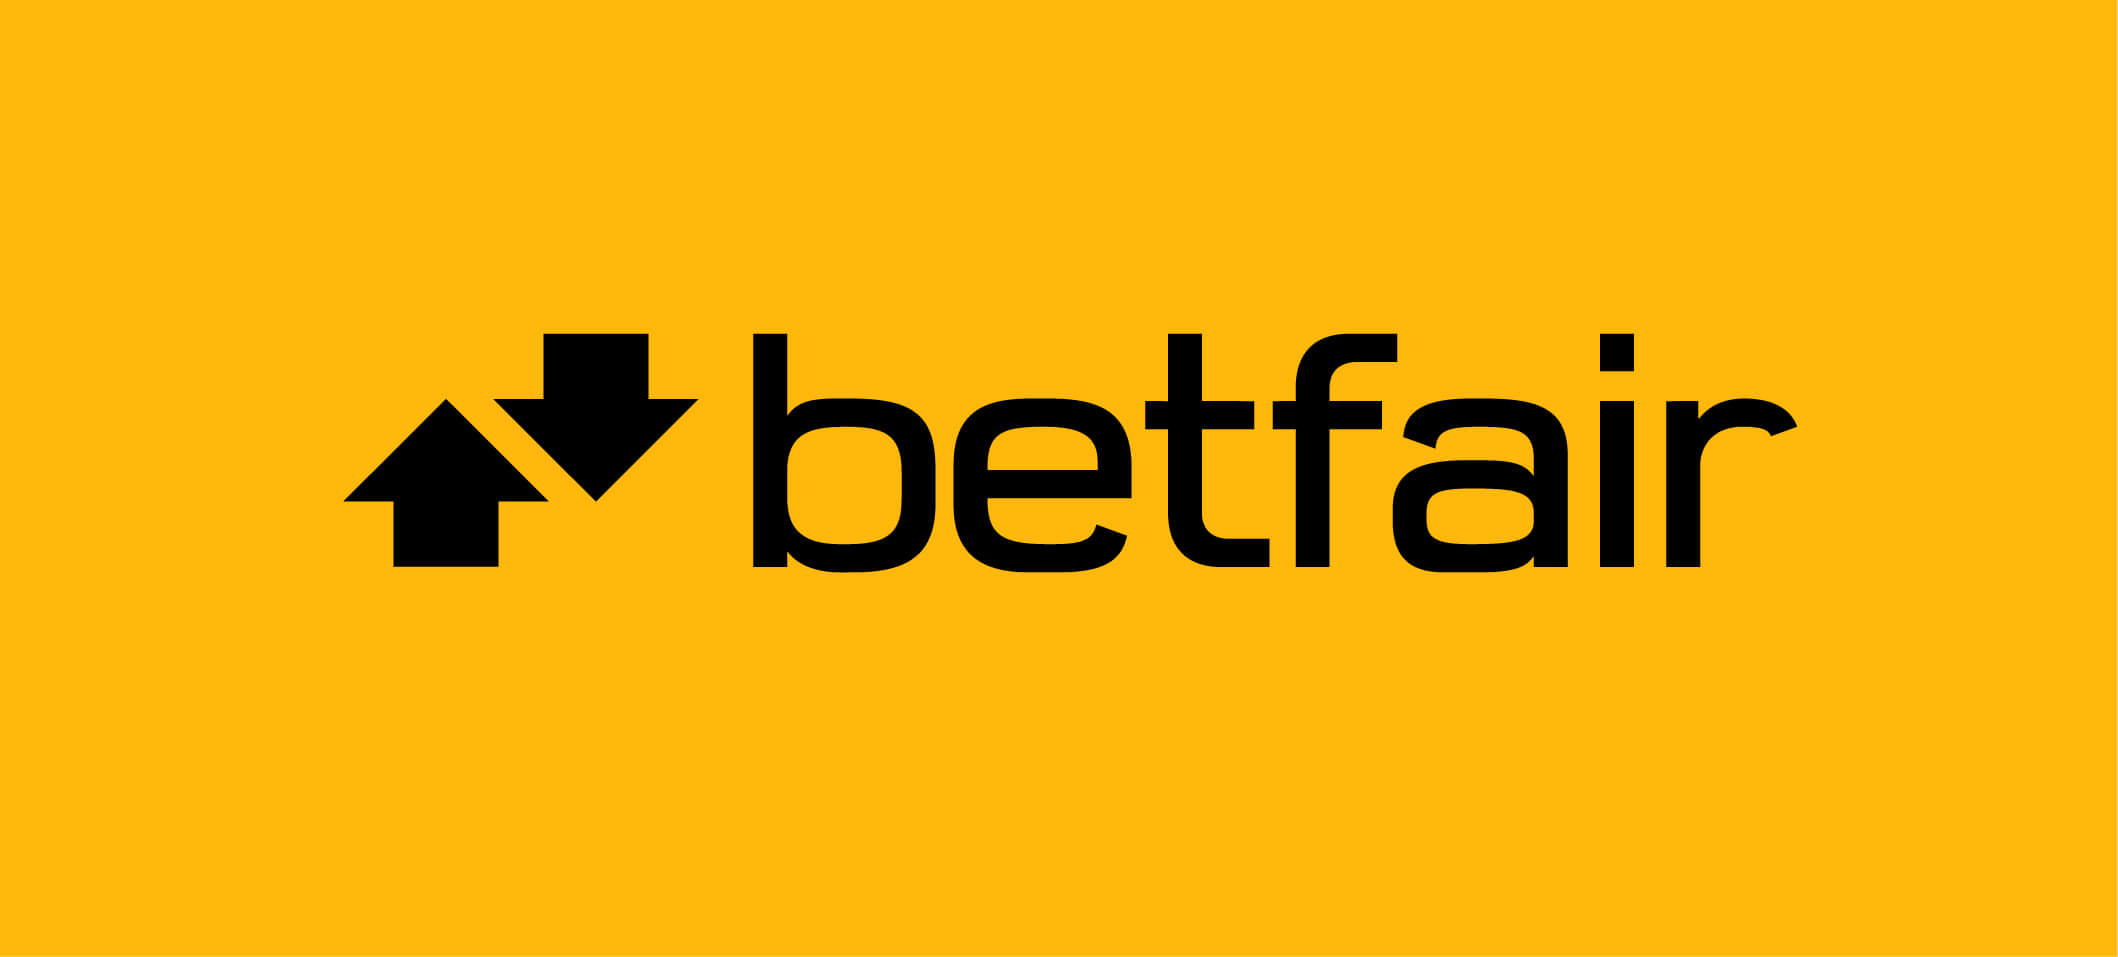 in the betting shop Betfair